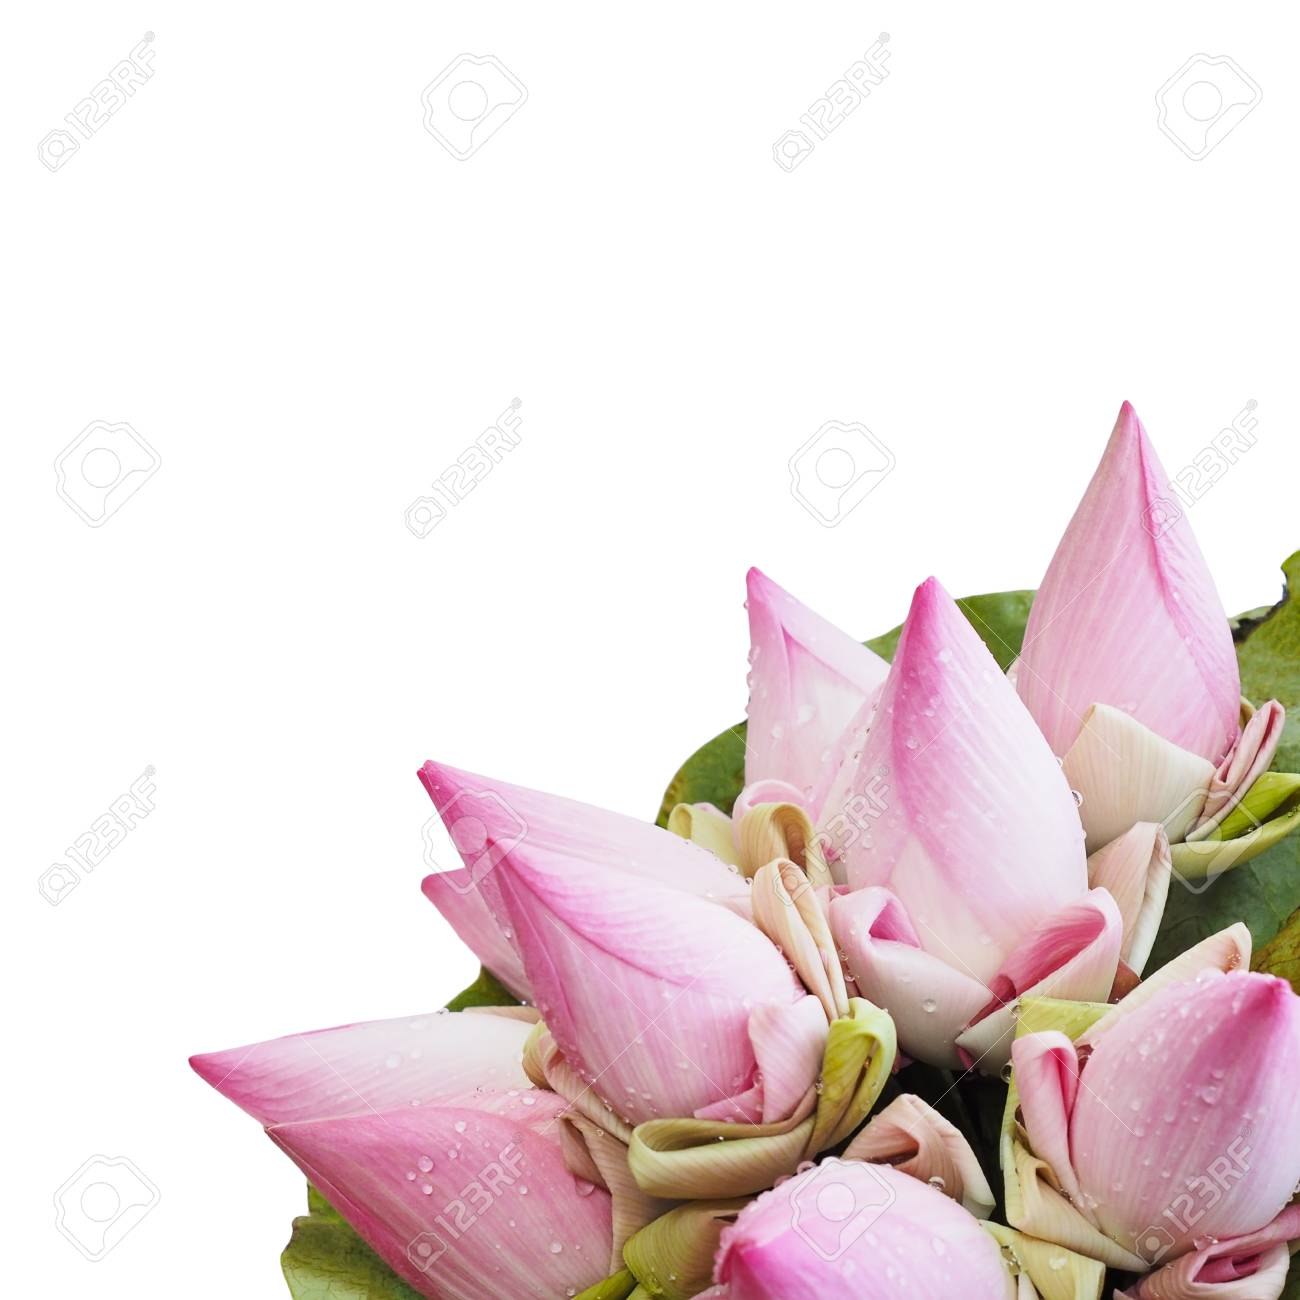 Close Up Pink Lotus Flower Bouquet With Leaf Thai Culture Style